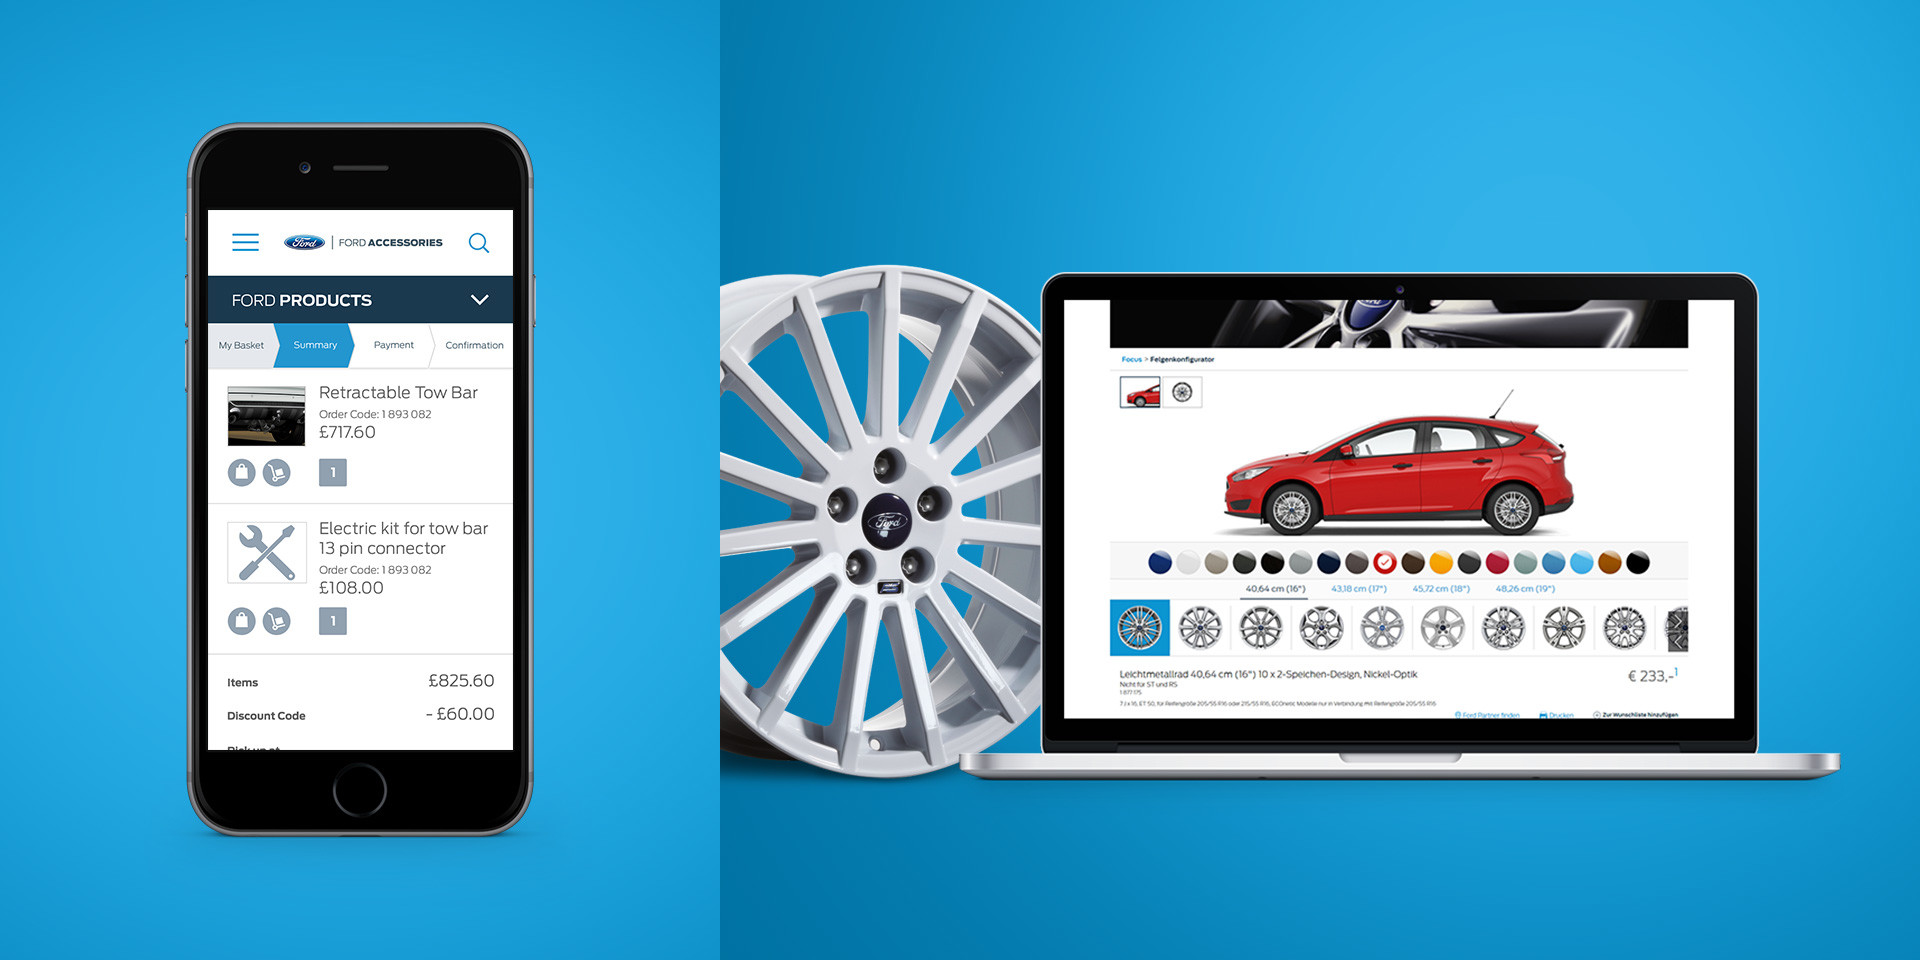 Ford Europe – Online Accessory Catalogue – Configurator and checkout